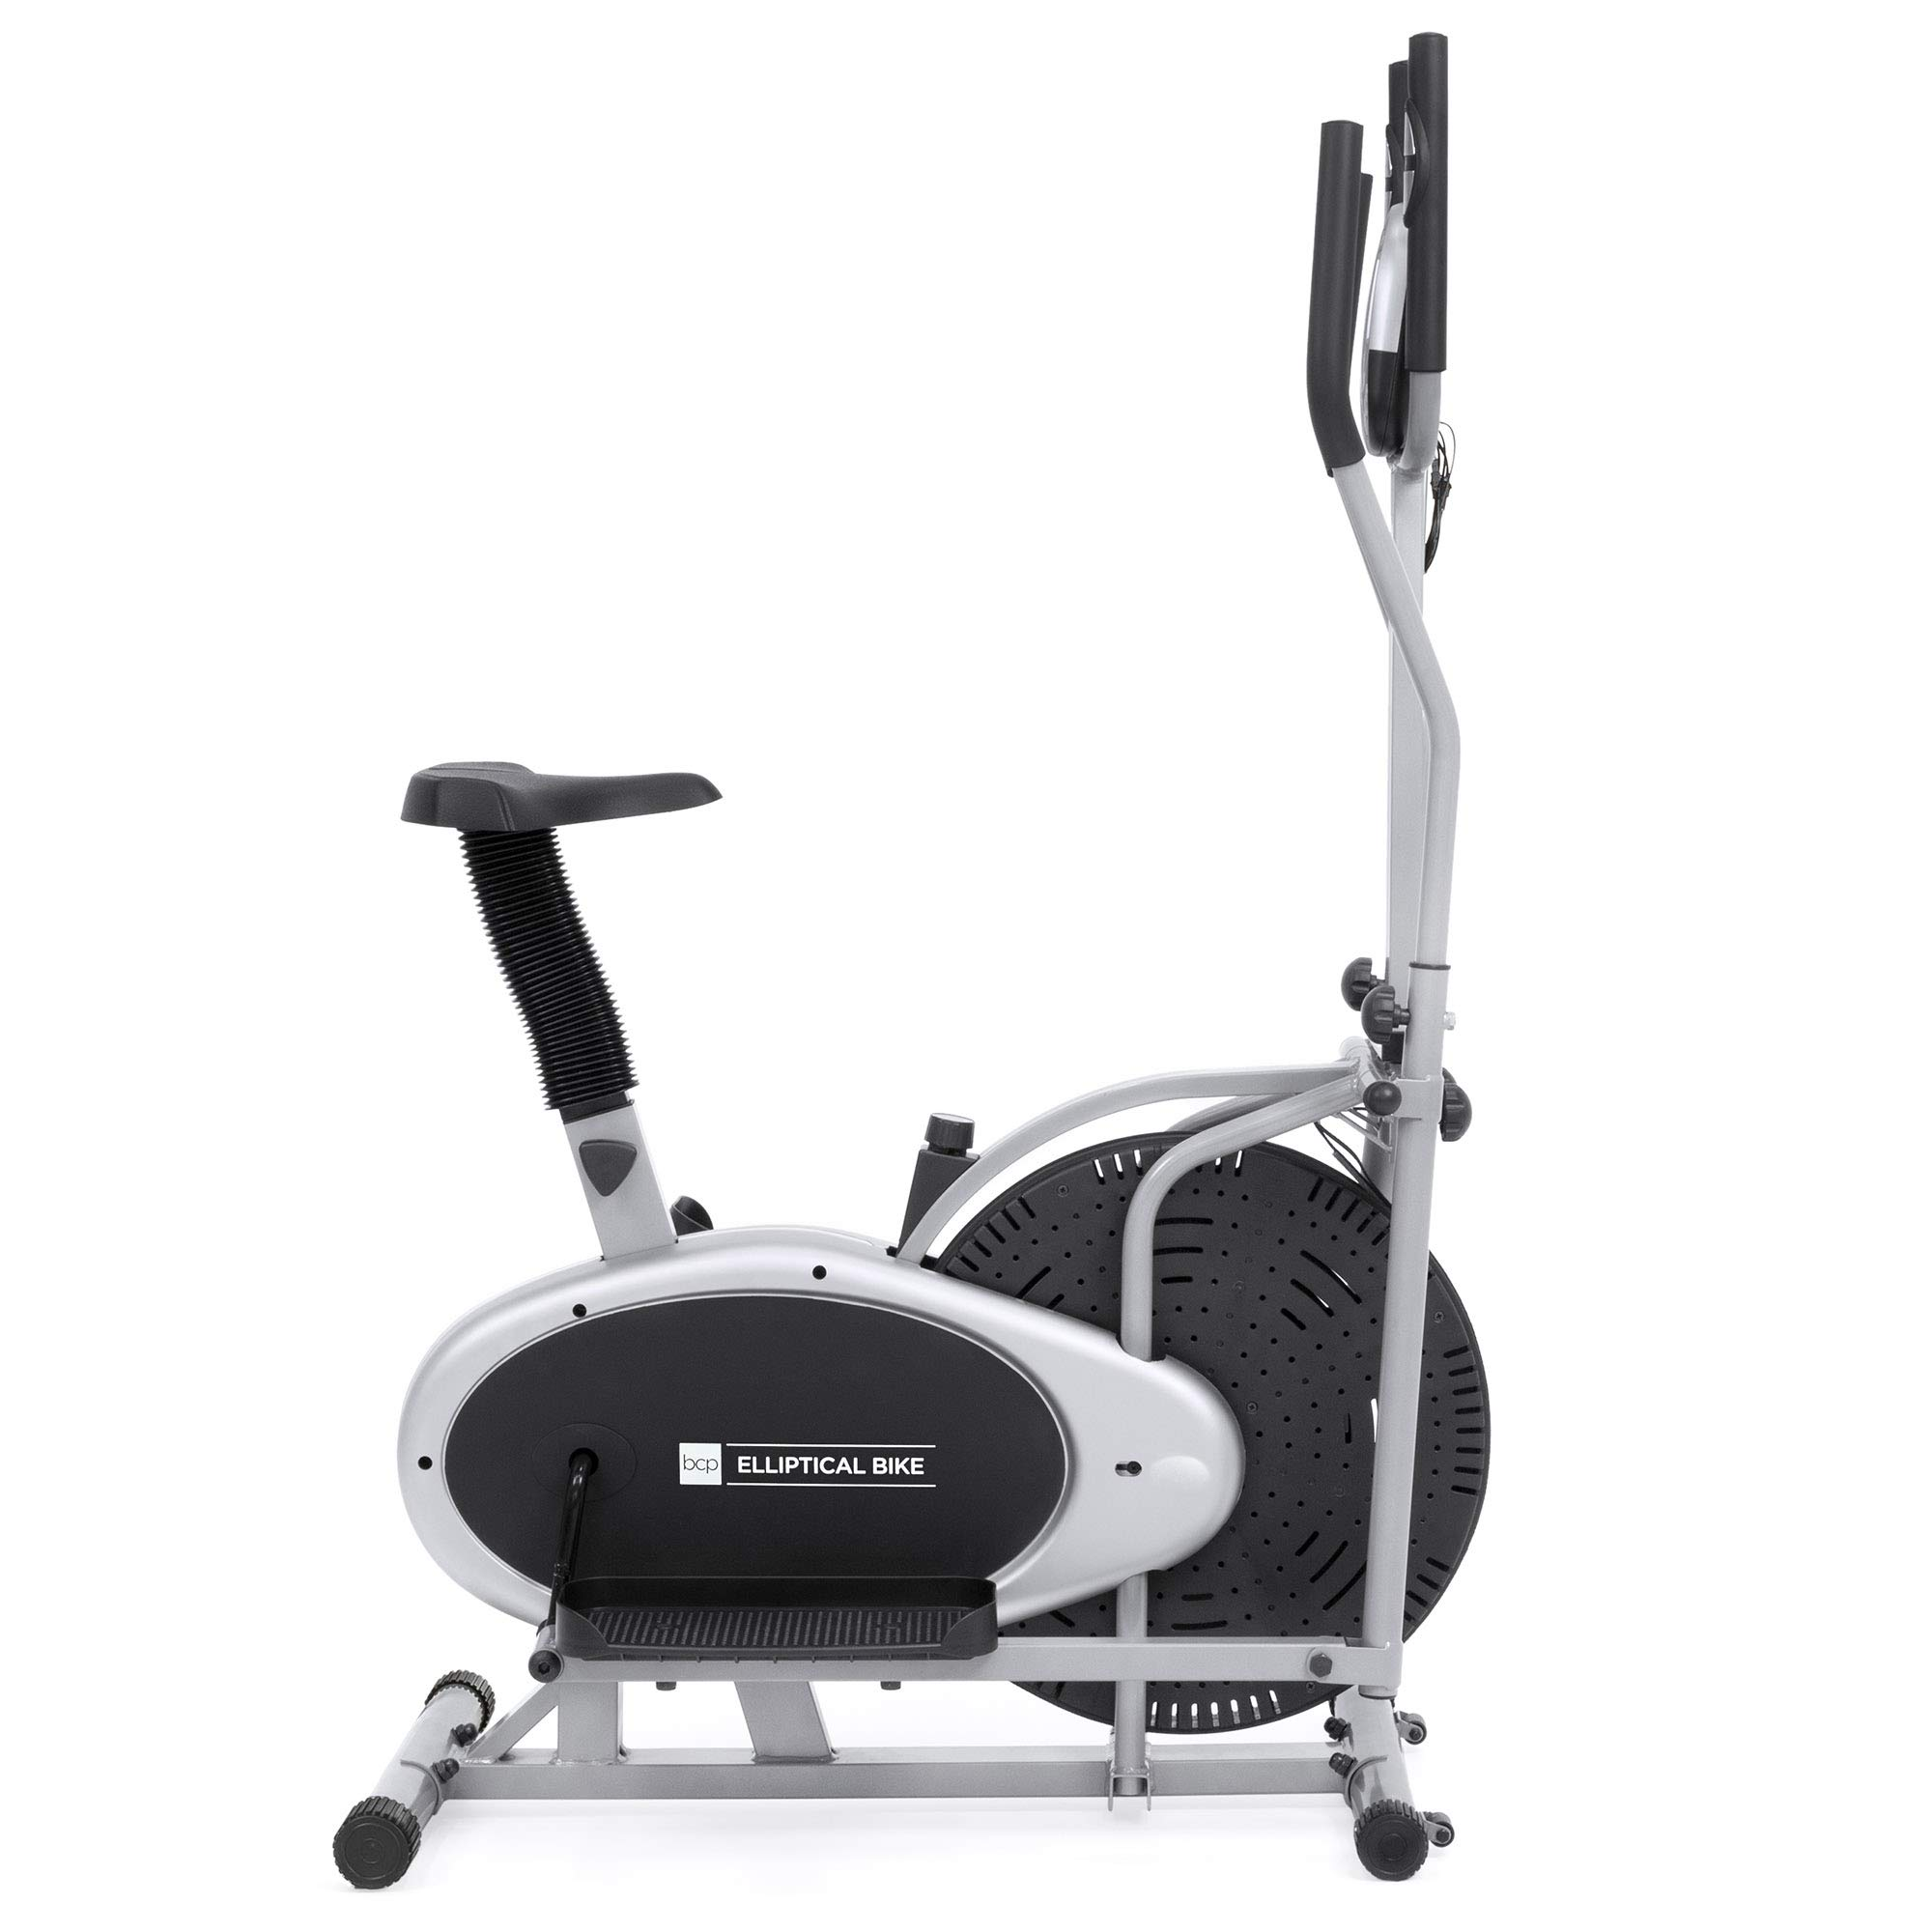 Elliptical Bike 2 IN 1 Cross Trainer Exercise Fitness Machine Upgraded Model by Best Choice Products (Image #3)